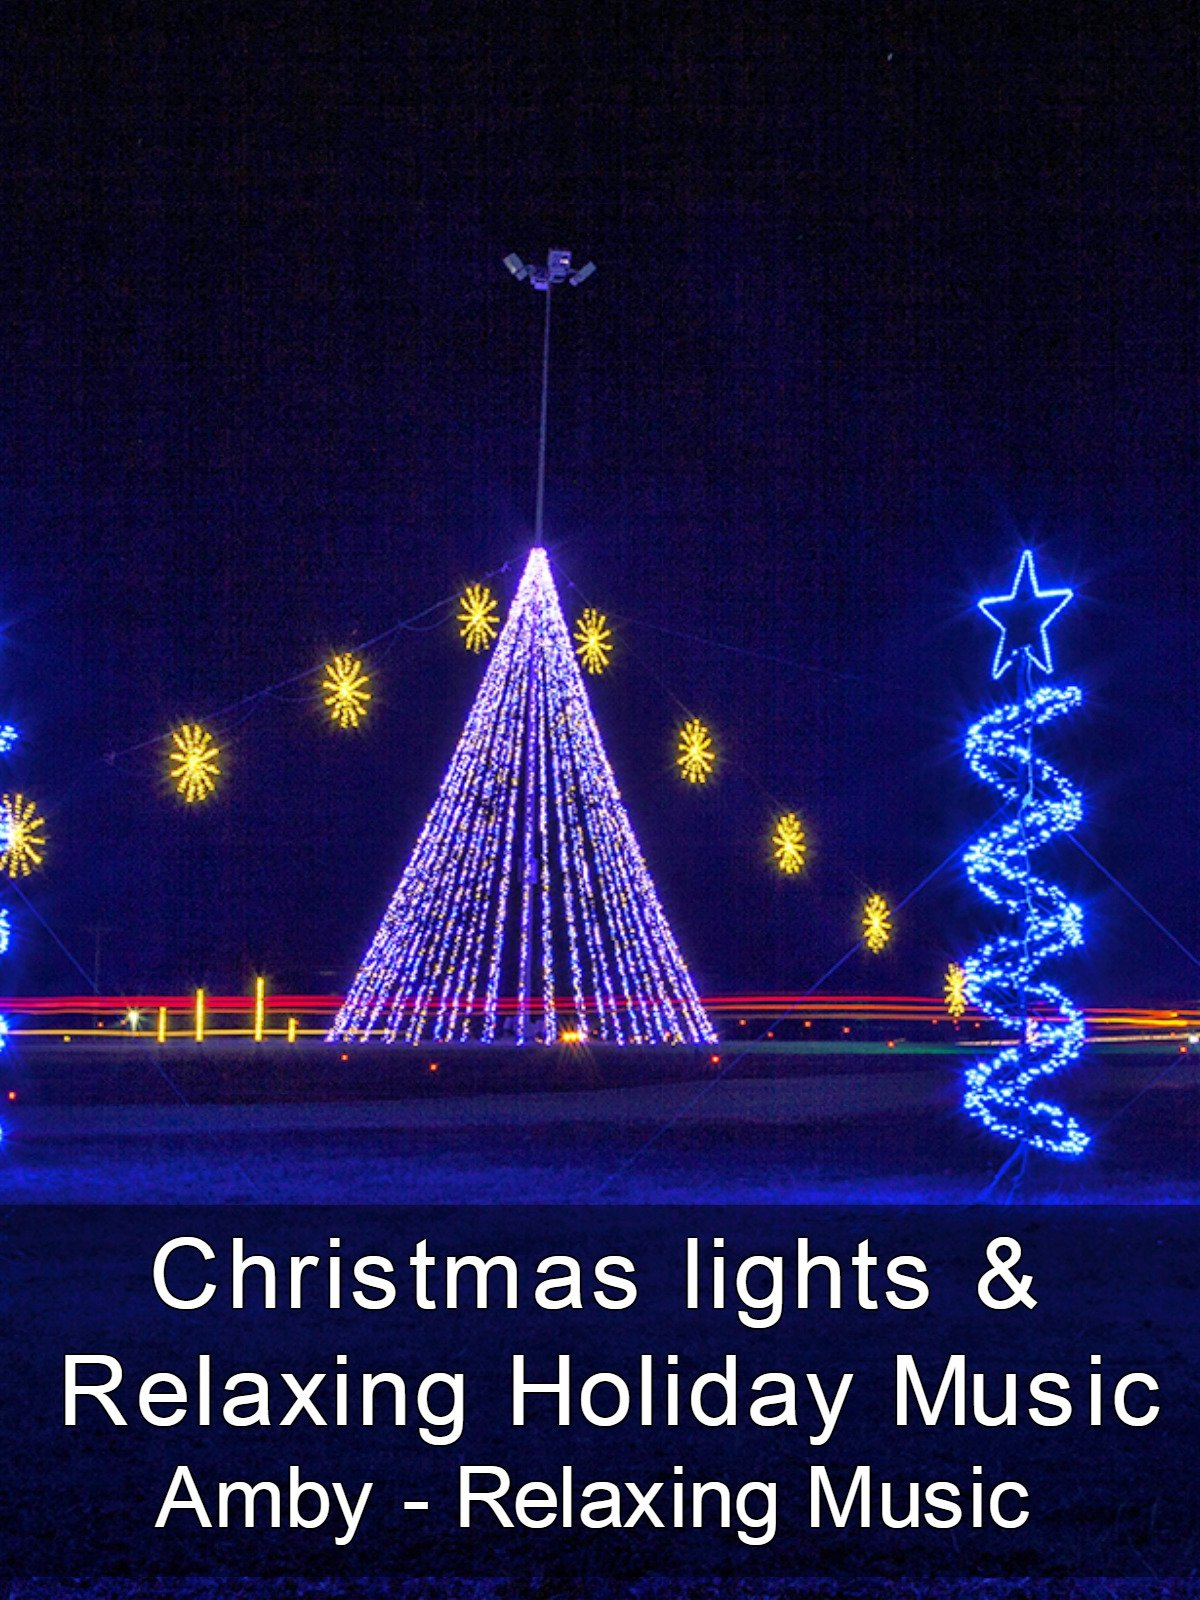 Christmas lights & Relaxing Holiday Music